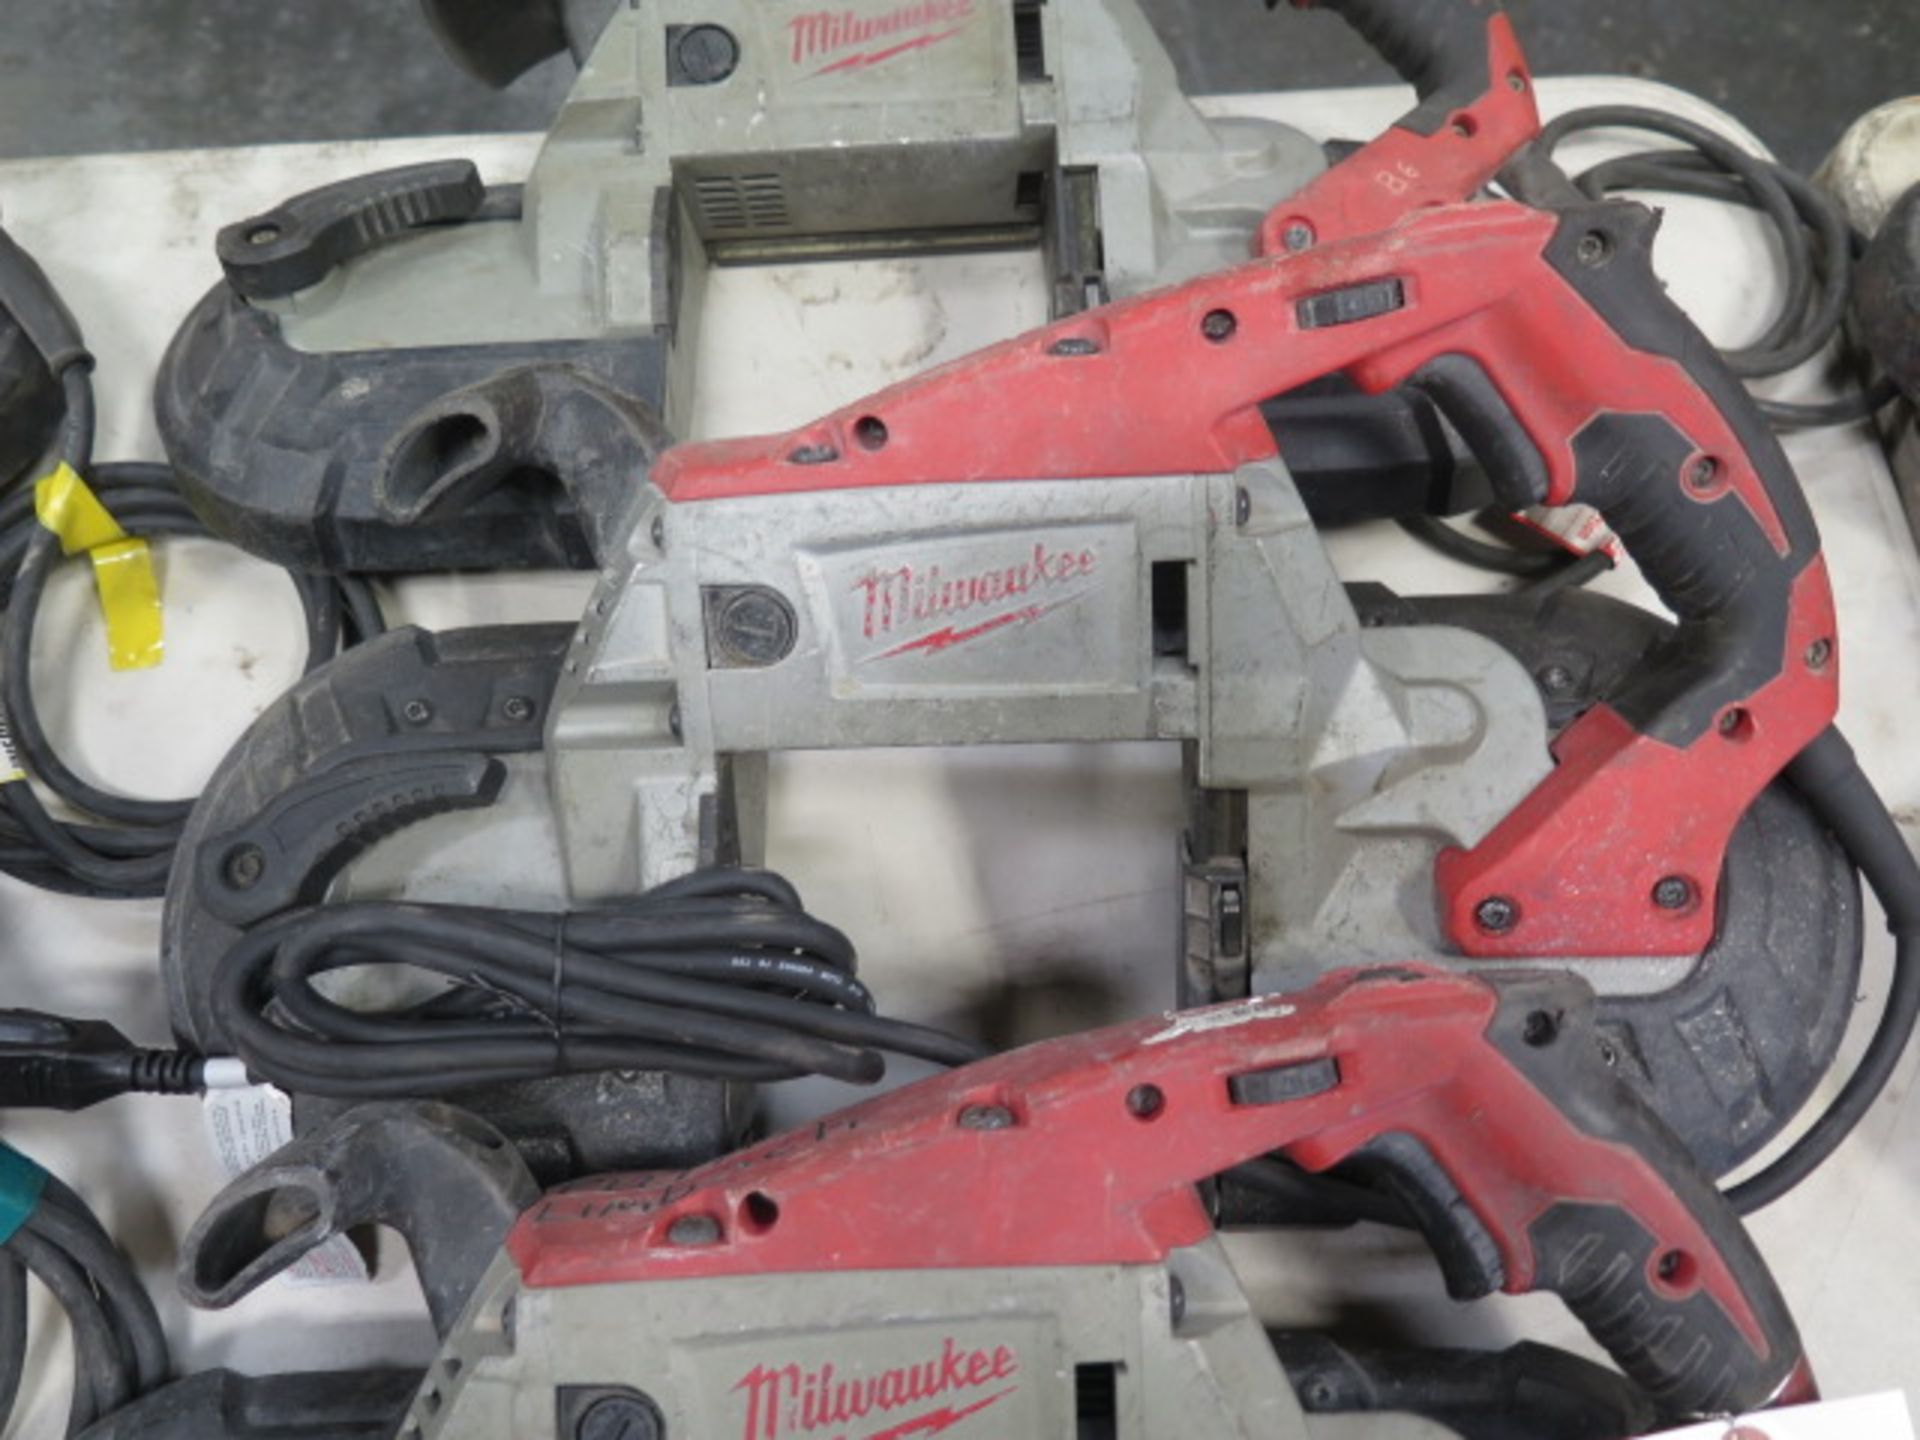 Milwaukee Deep Cut Band Saws (3) (SOLD AS-IS - NO WARRANTY) - Image 4 of 6